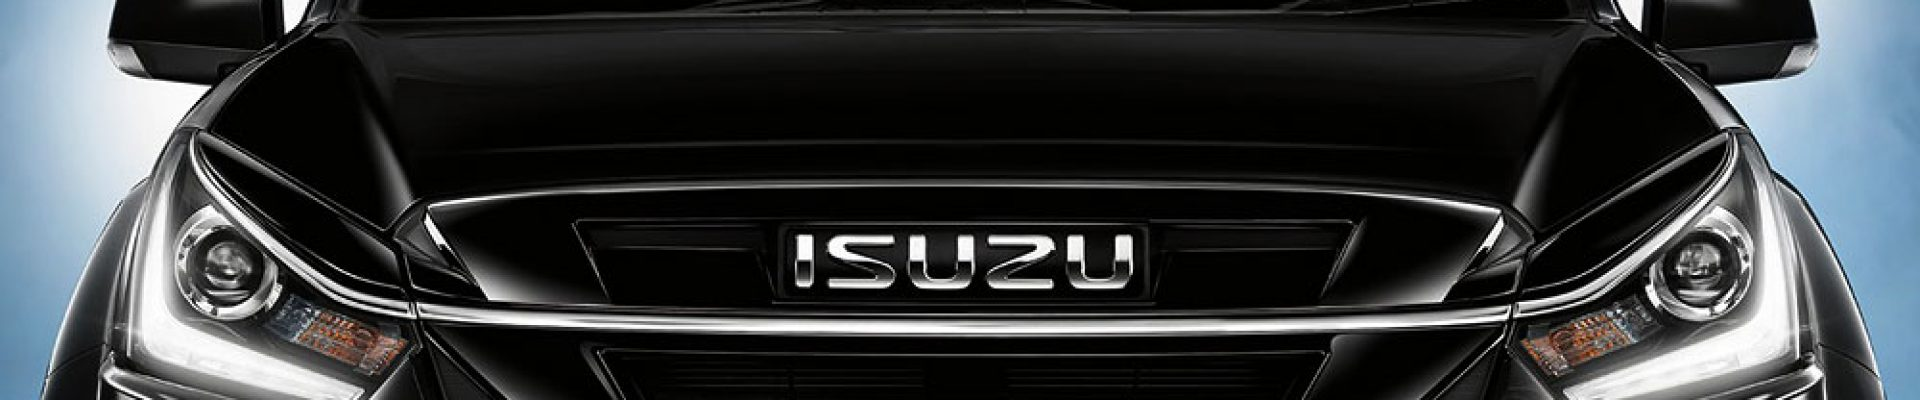 isuzu car battery banner 2